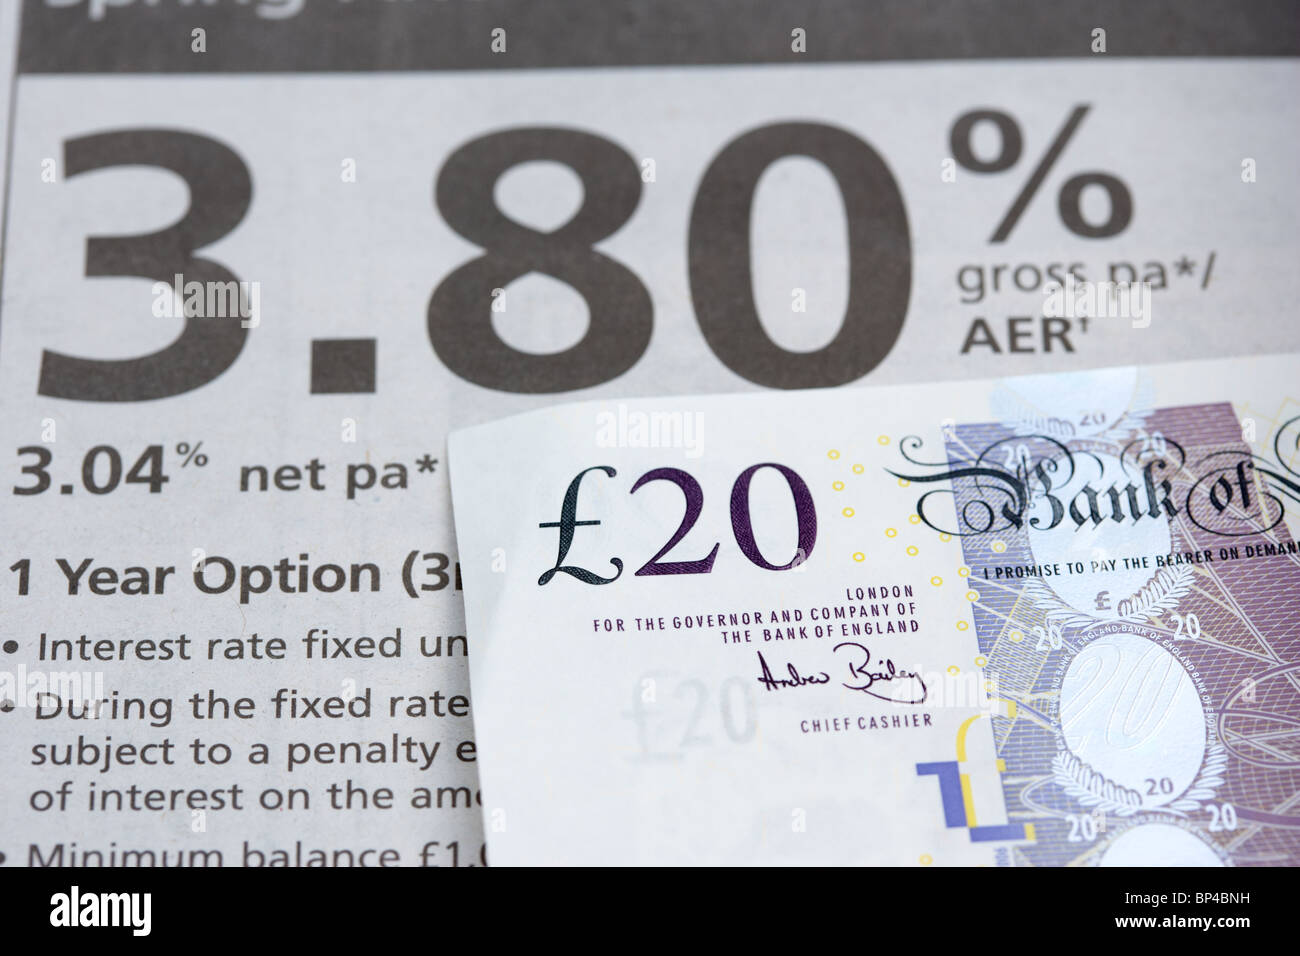 20 pound note beside a bank loan advertisement in an newspaper - Stock Image